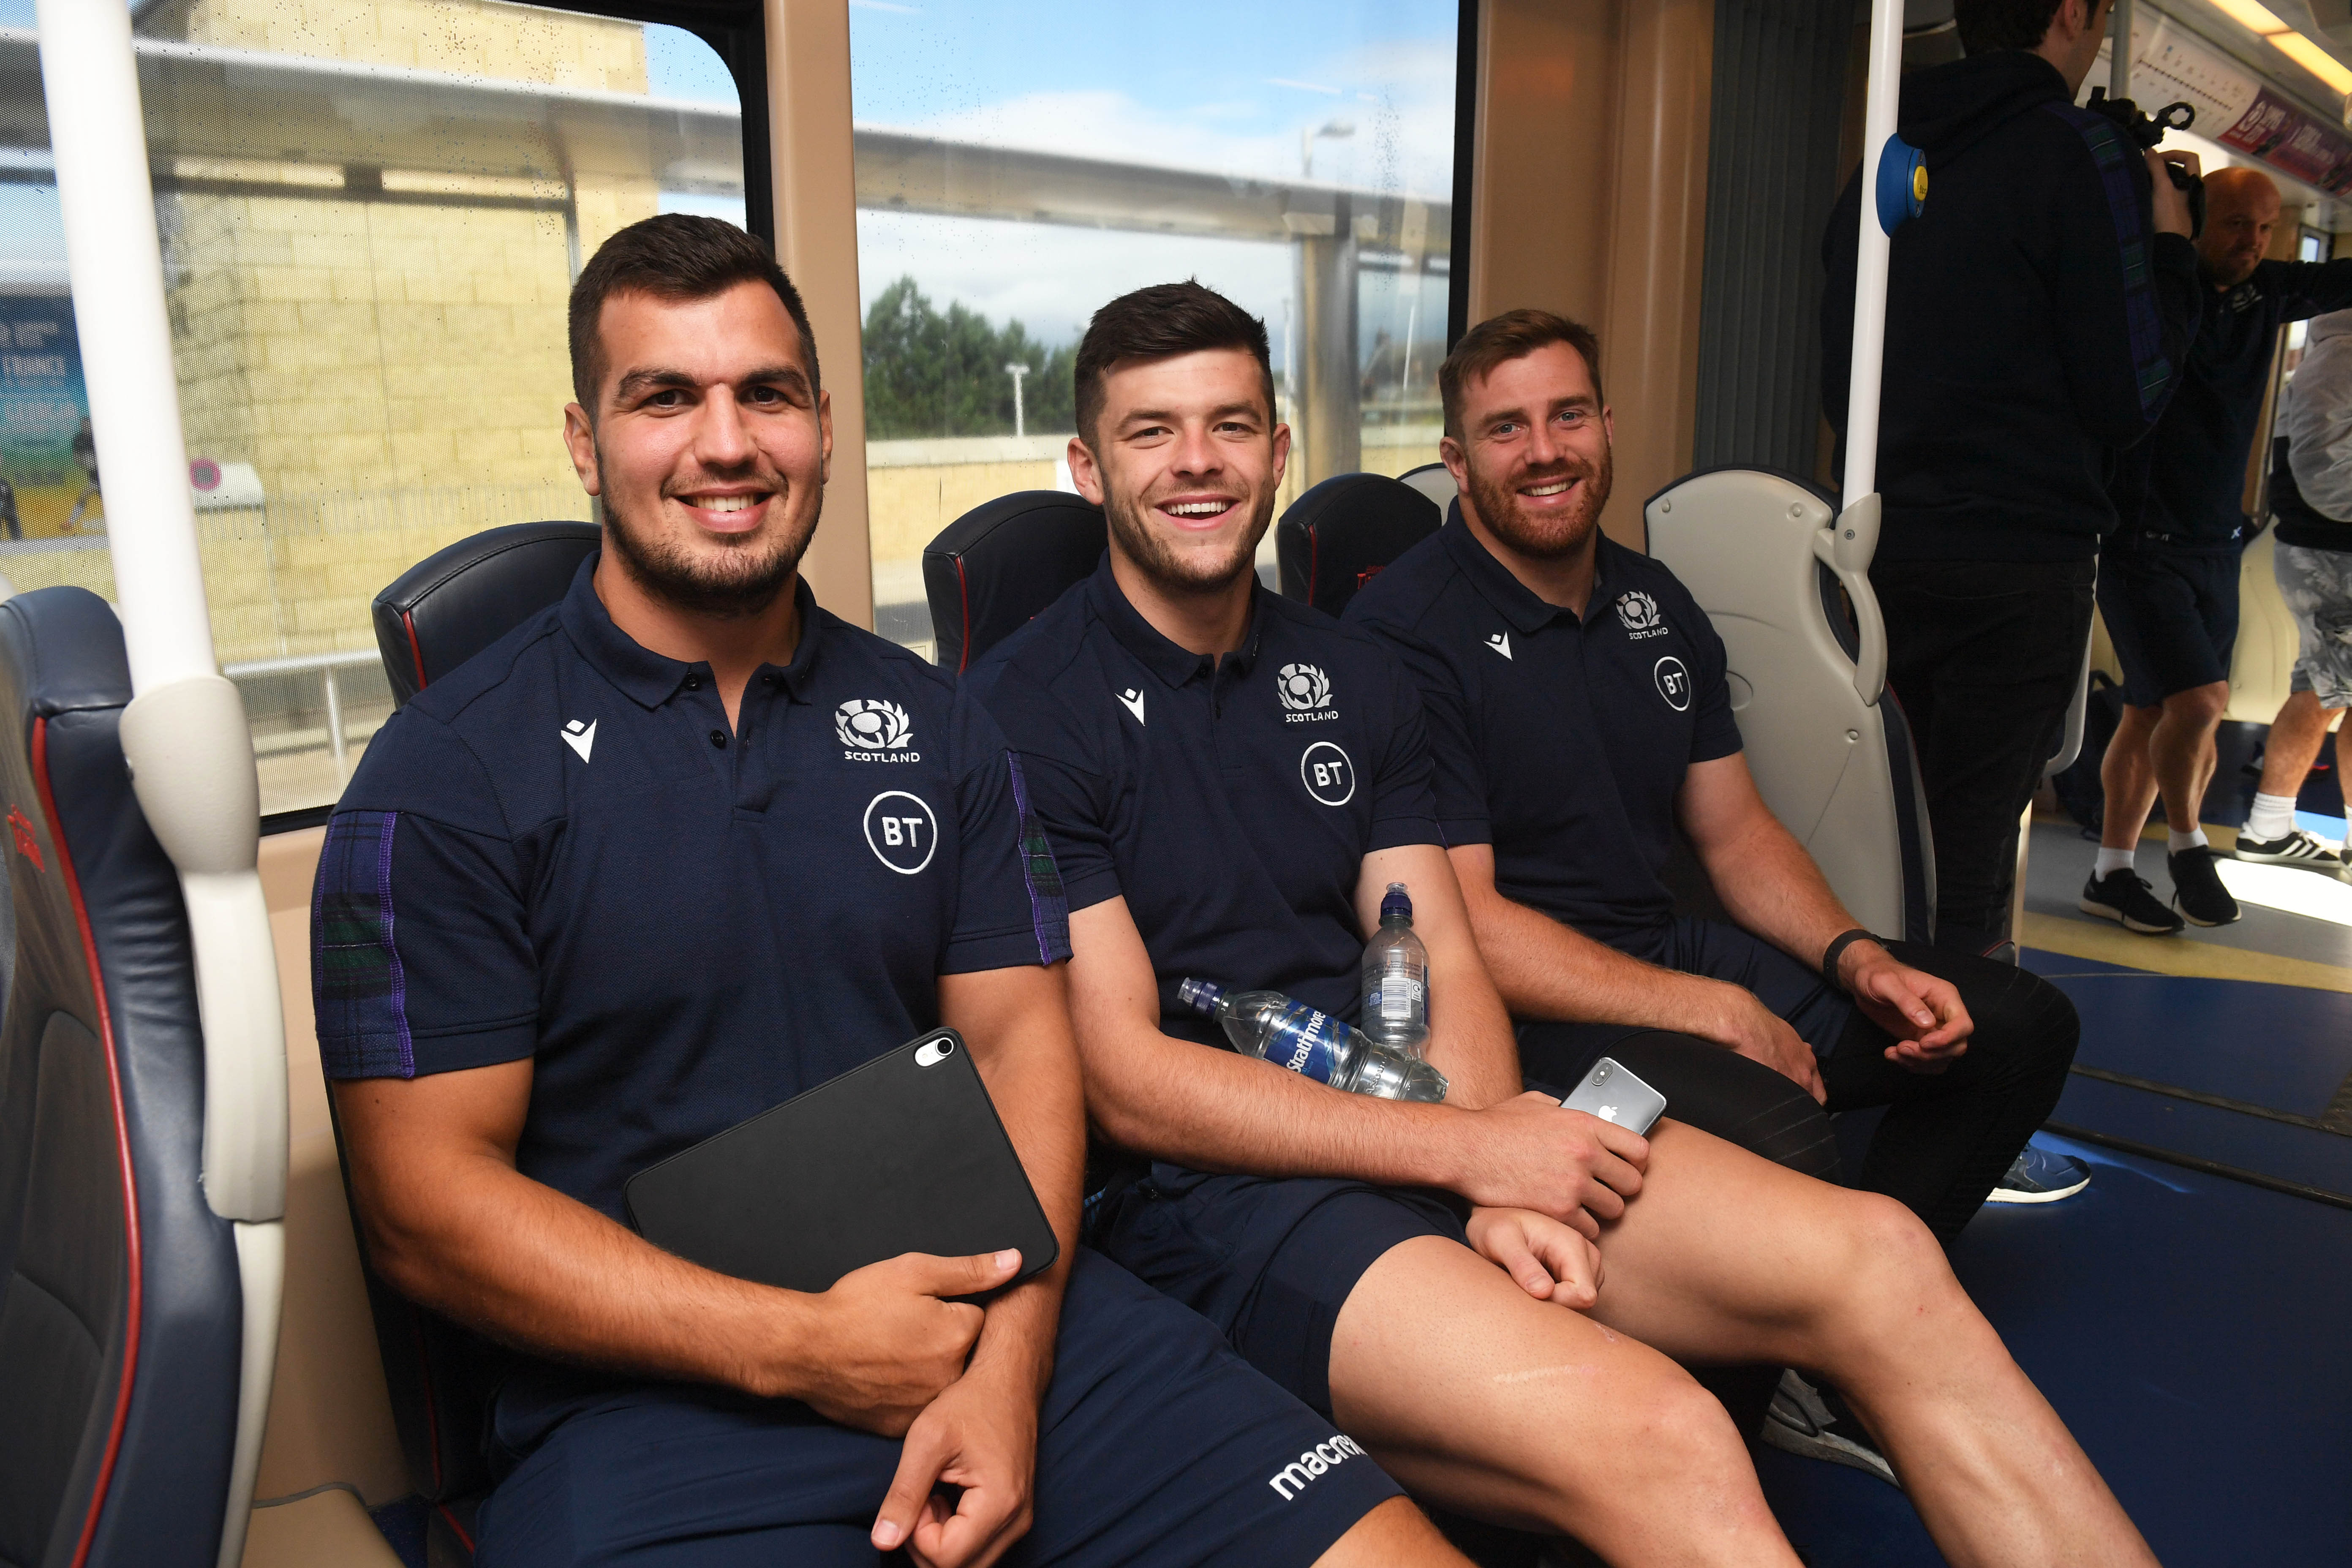 The Scotland team took the tram from Murrayfield to Edinigrh Airport on their way to Nice. (L to r) Skipper Stuart McInally, Blair Kinghorn and Simon Berghan take their seats.